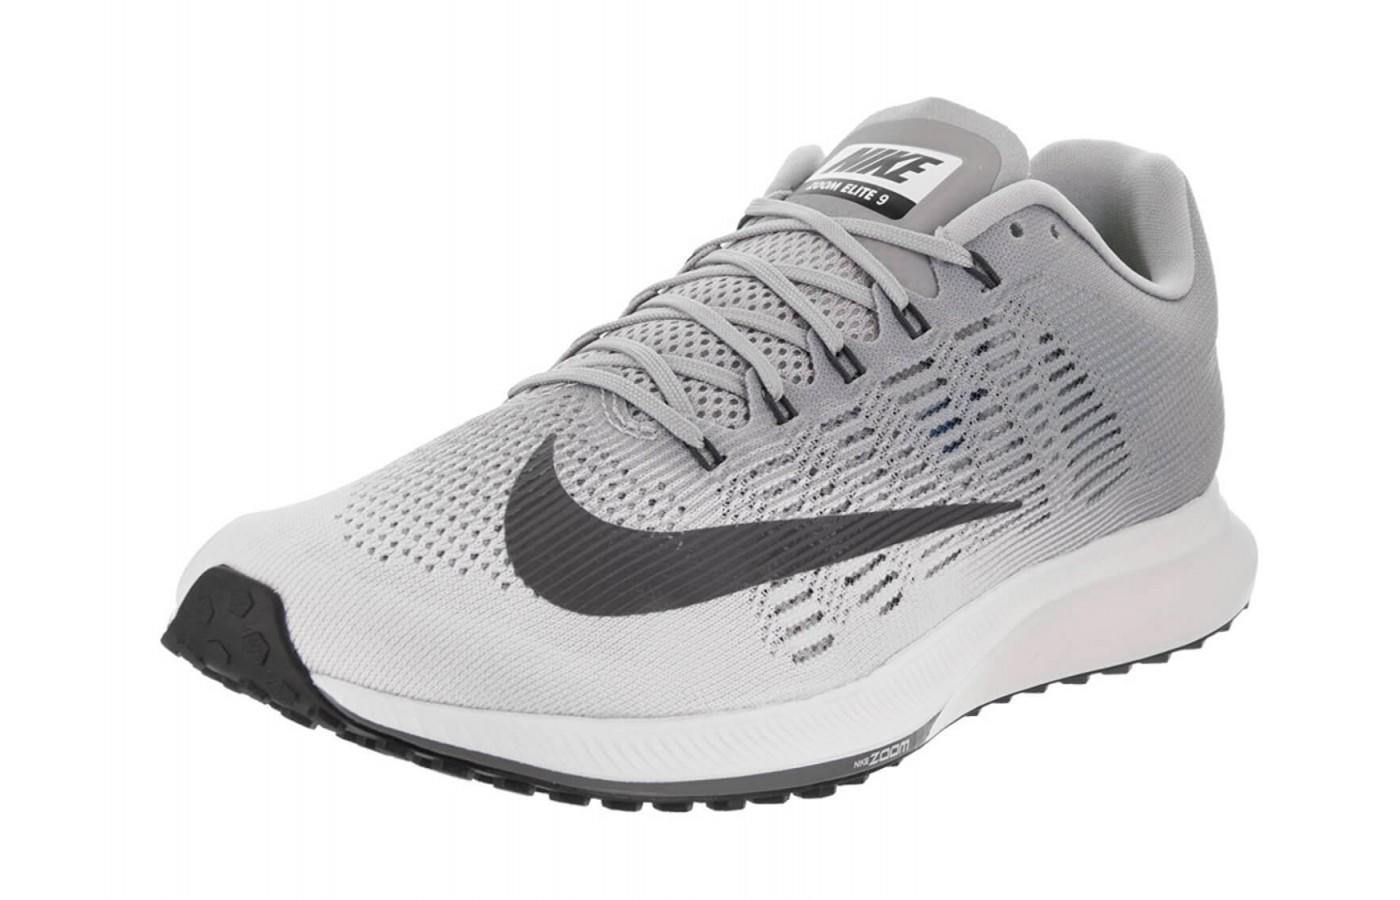 newest e92a8 27baf Nike Air Zoom Elite 9 Review - Buy or Not in Sep 2019?